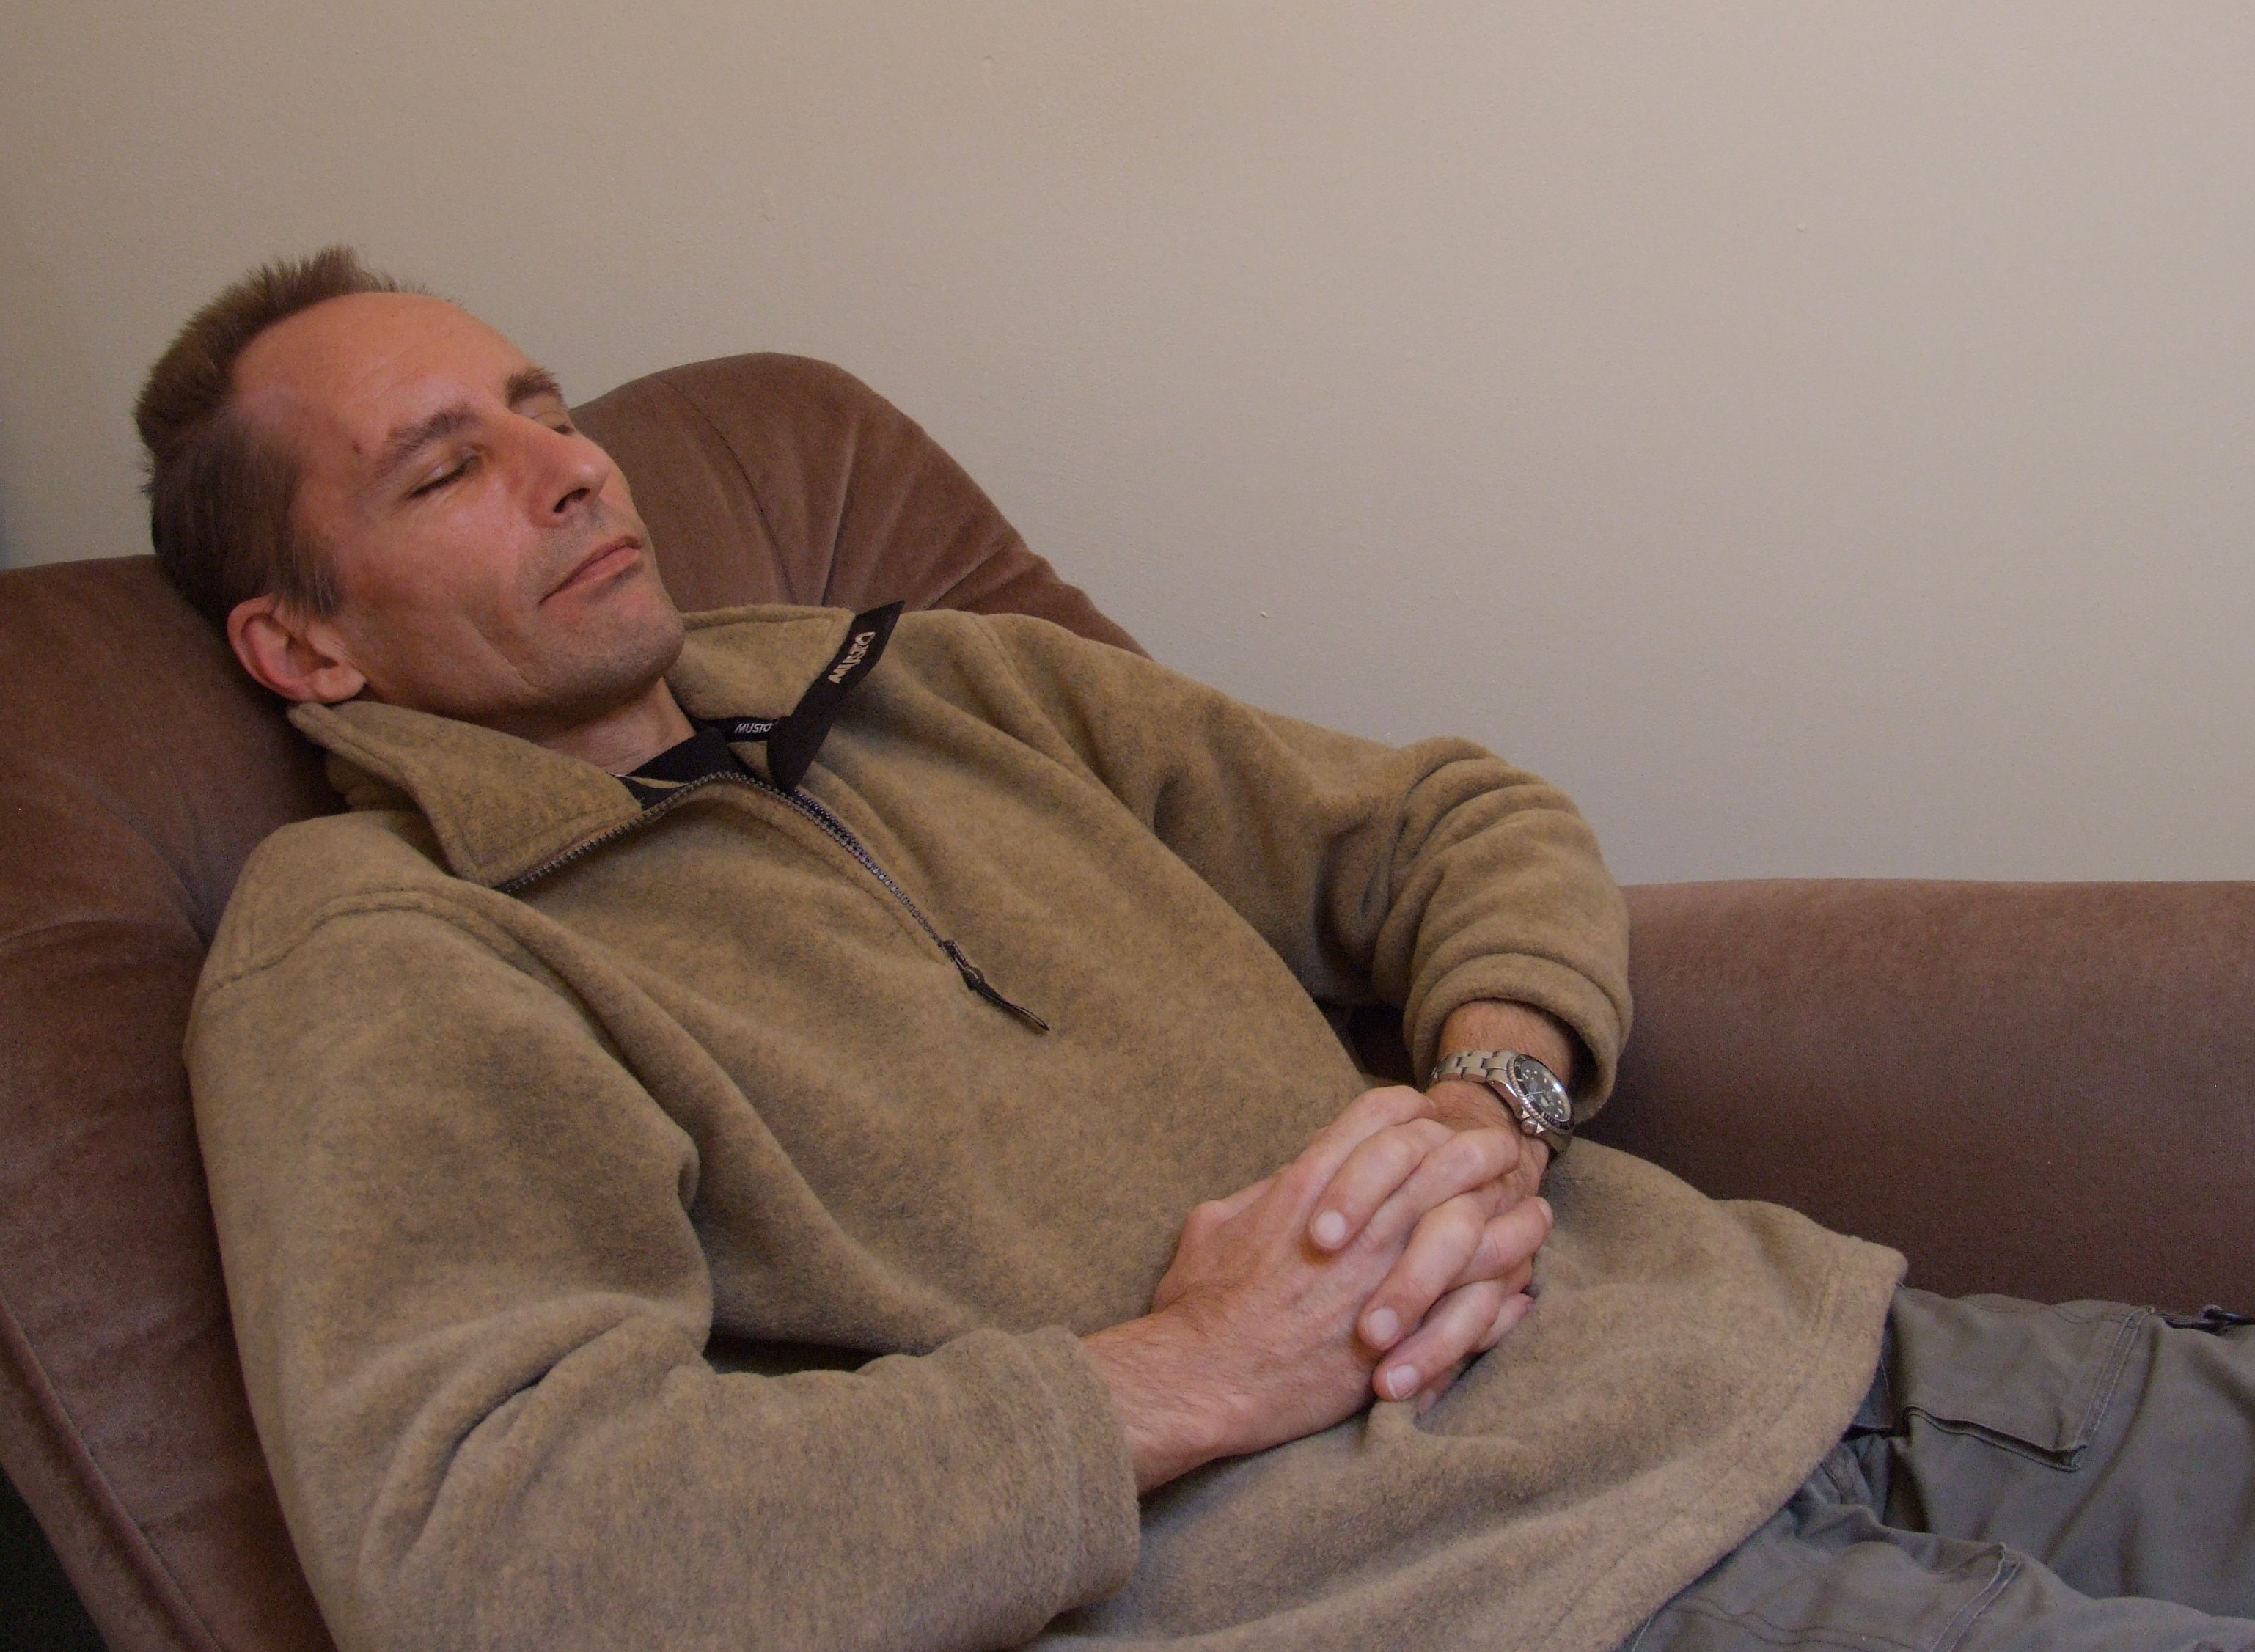 Hypnotherapy Treatment Session